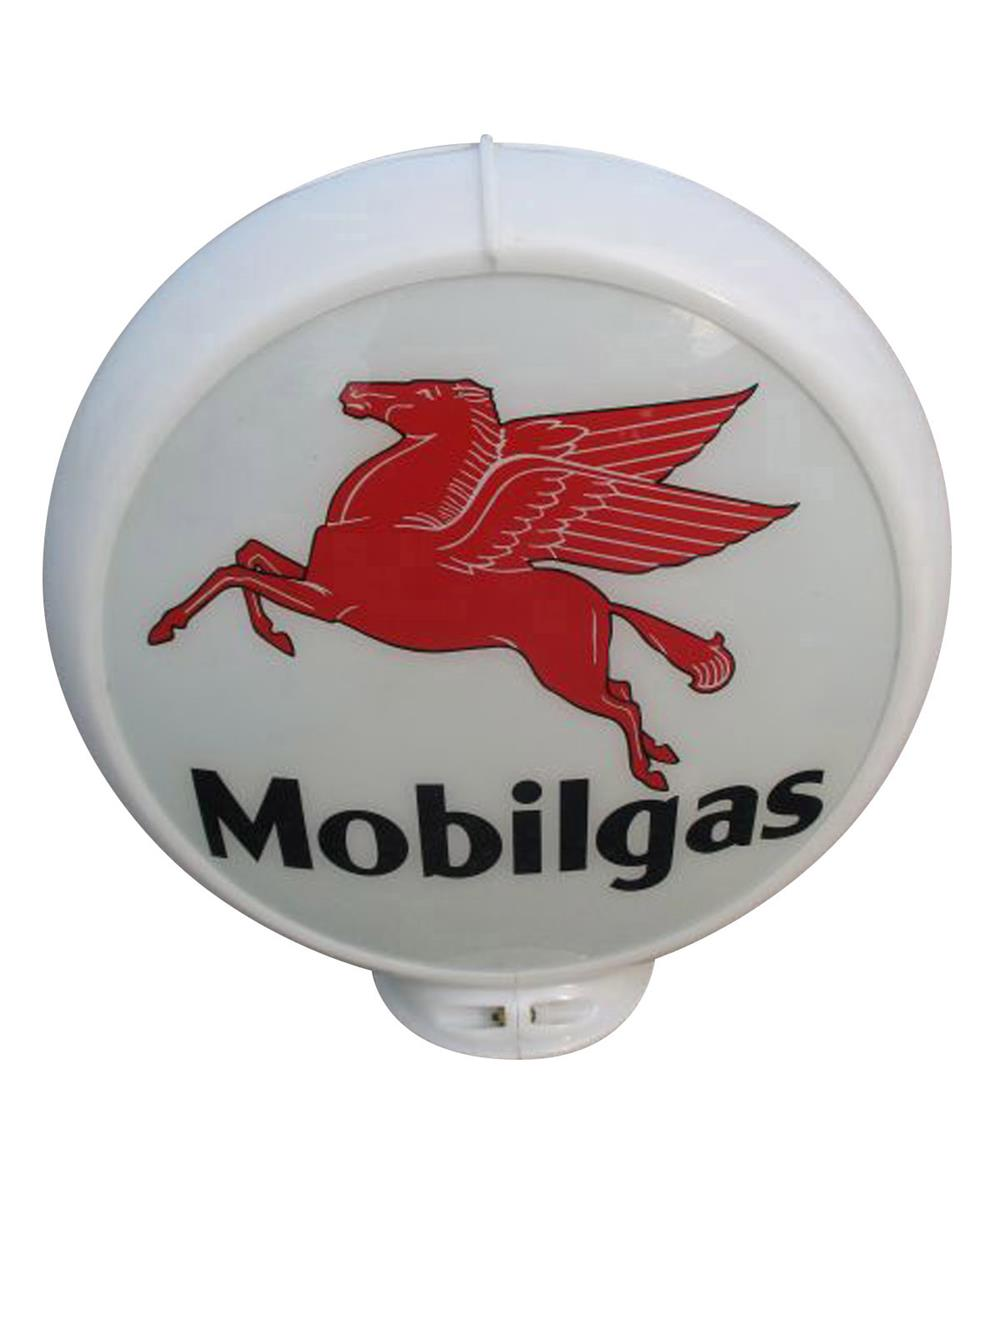 Sharp circa 1950s Mobilgas gas pump globe with Pegasus logo in a Capcolite body. - Front 3/4 - 187863